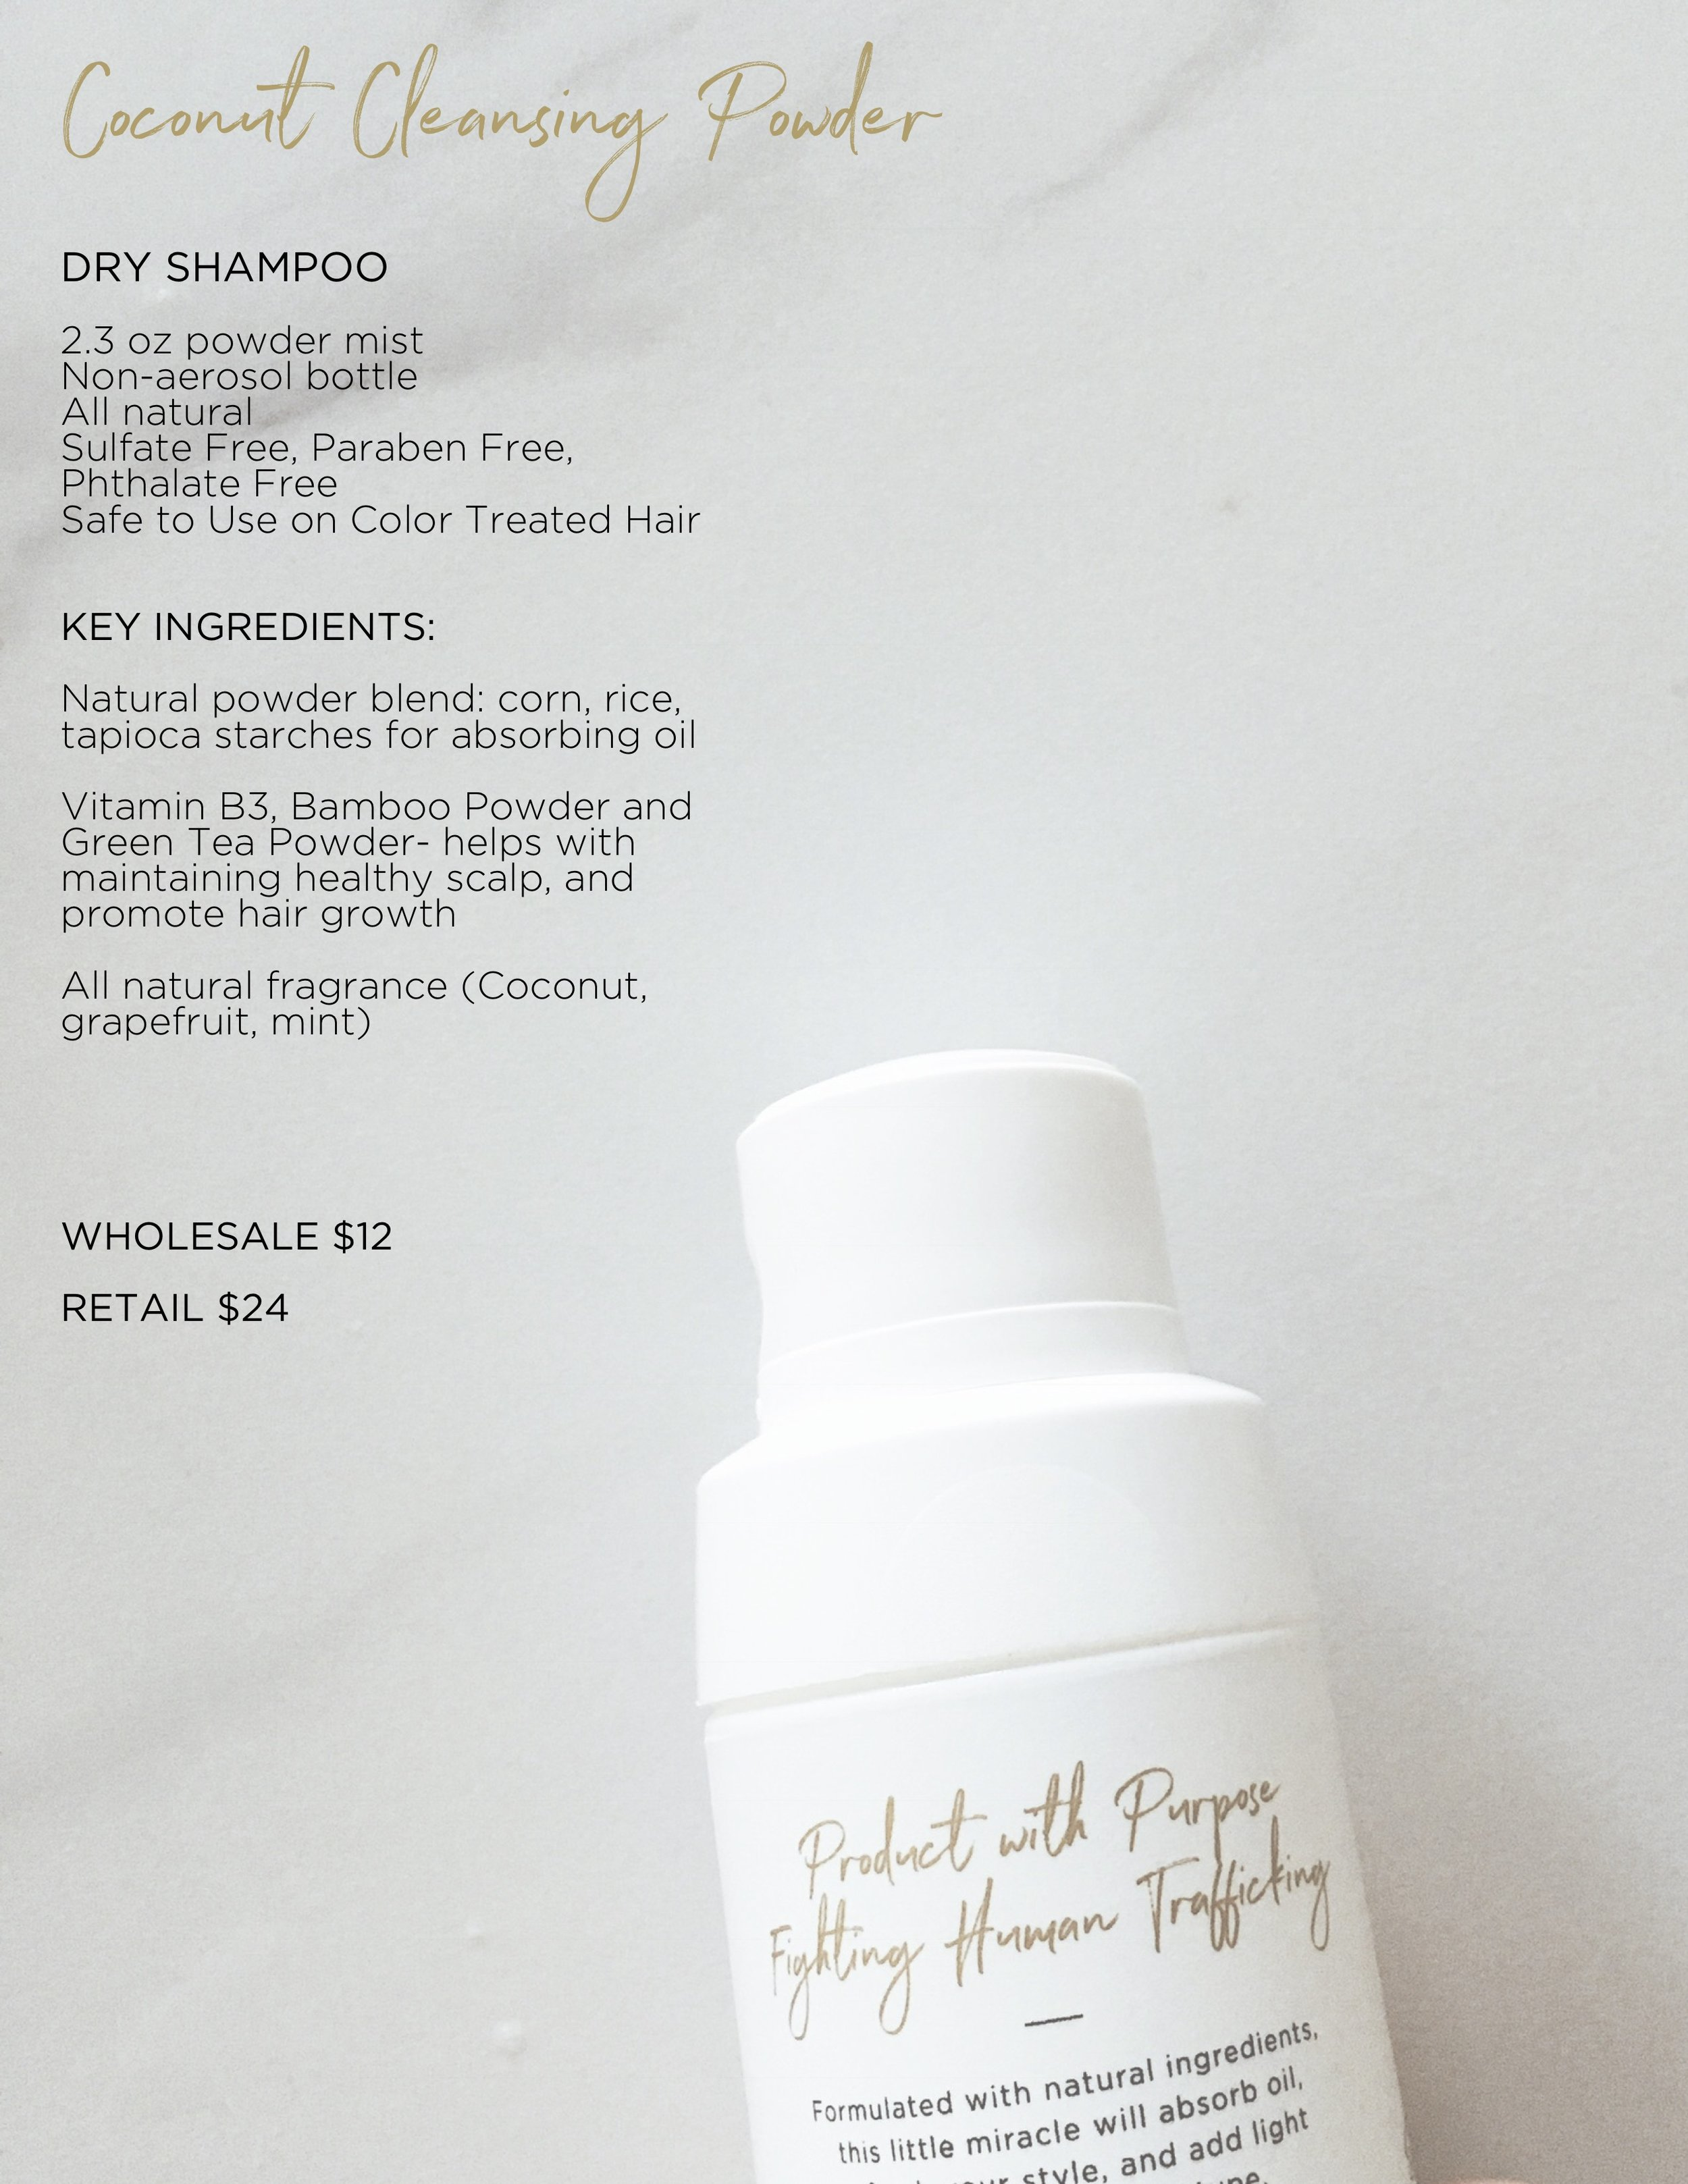 MISSIO Product Guide - WHOLESALE5.jpg